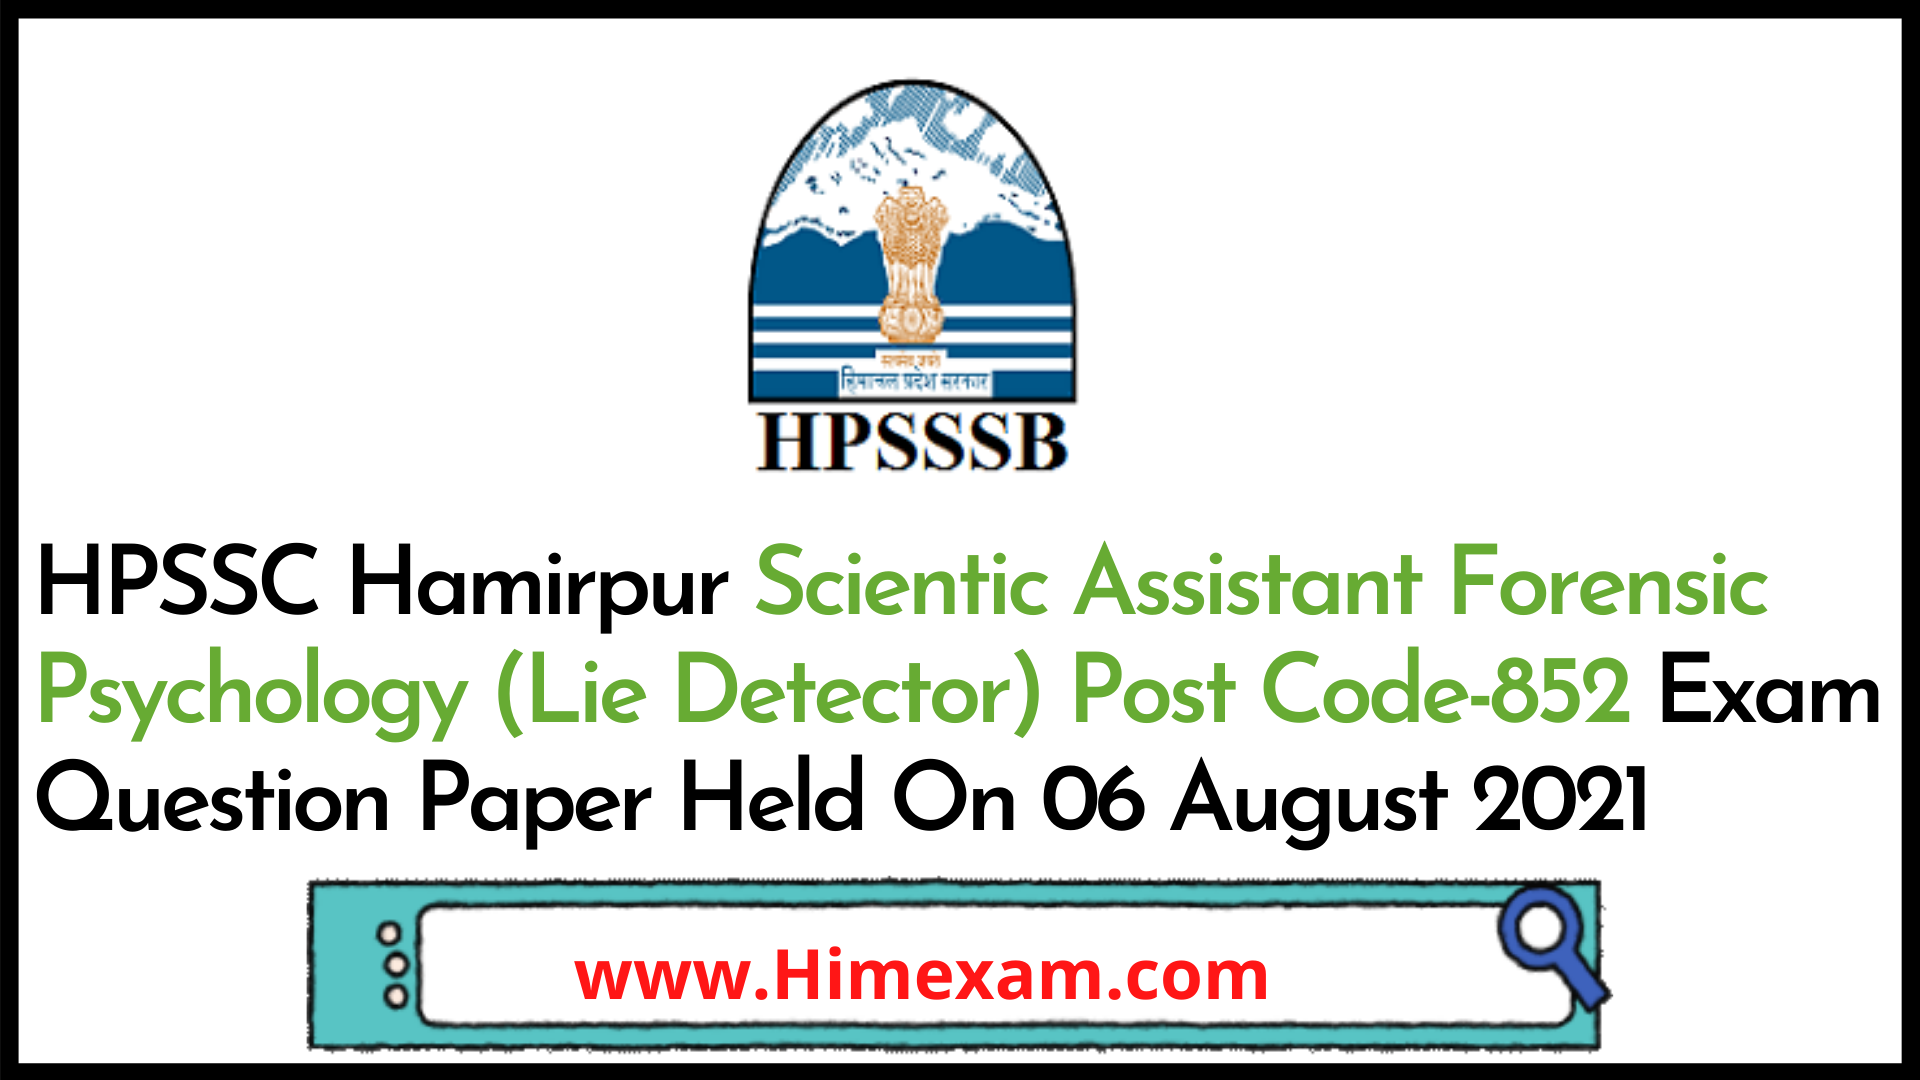 HPSSC Hamirpur Scientic Assistant Forensic Psychology (Lie Detector) Post Code-852 Exam Question Paper Held On 06 August 2021